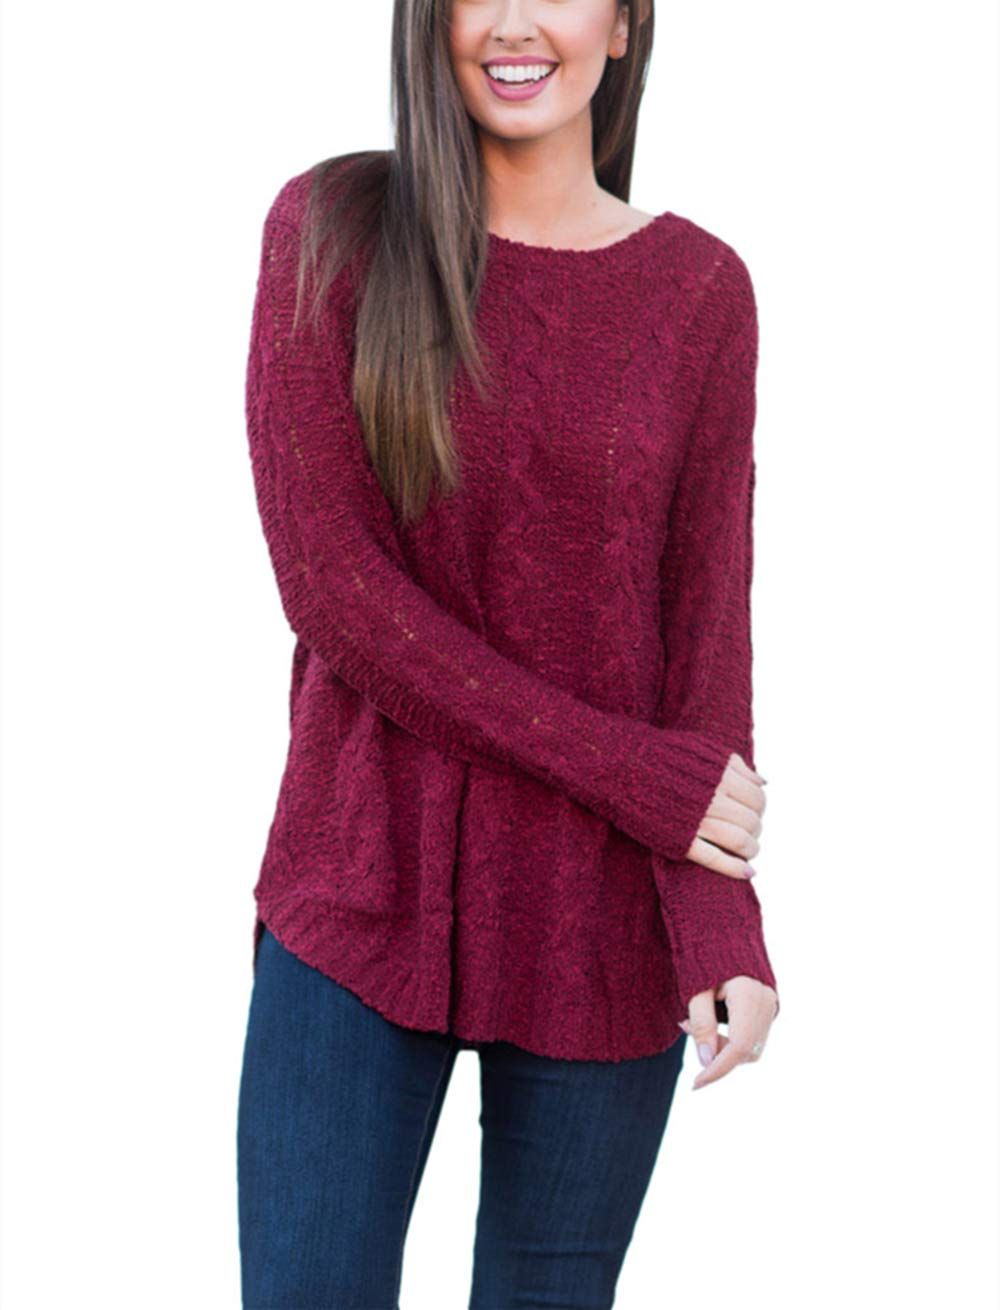 AMAURAS Size 6-24 Women Super Soft Loose Sweater Tunic Top Scoop Neck Pullover Shirt